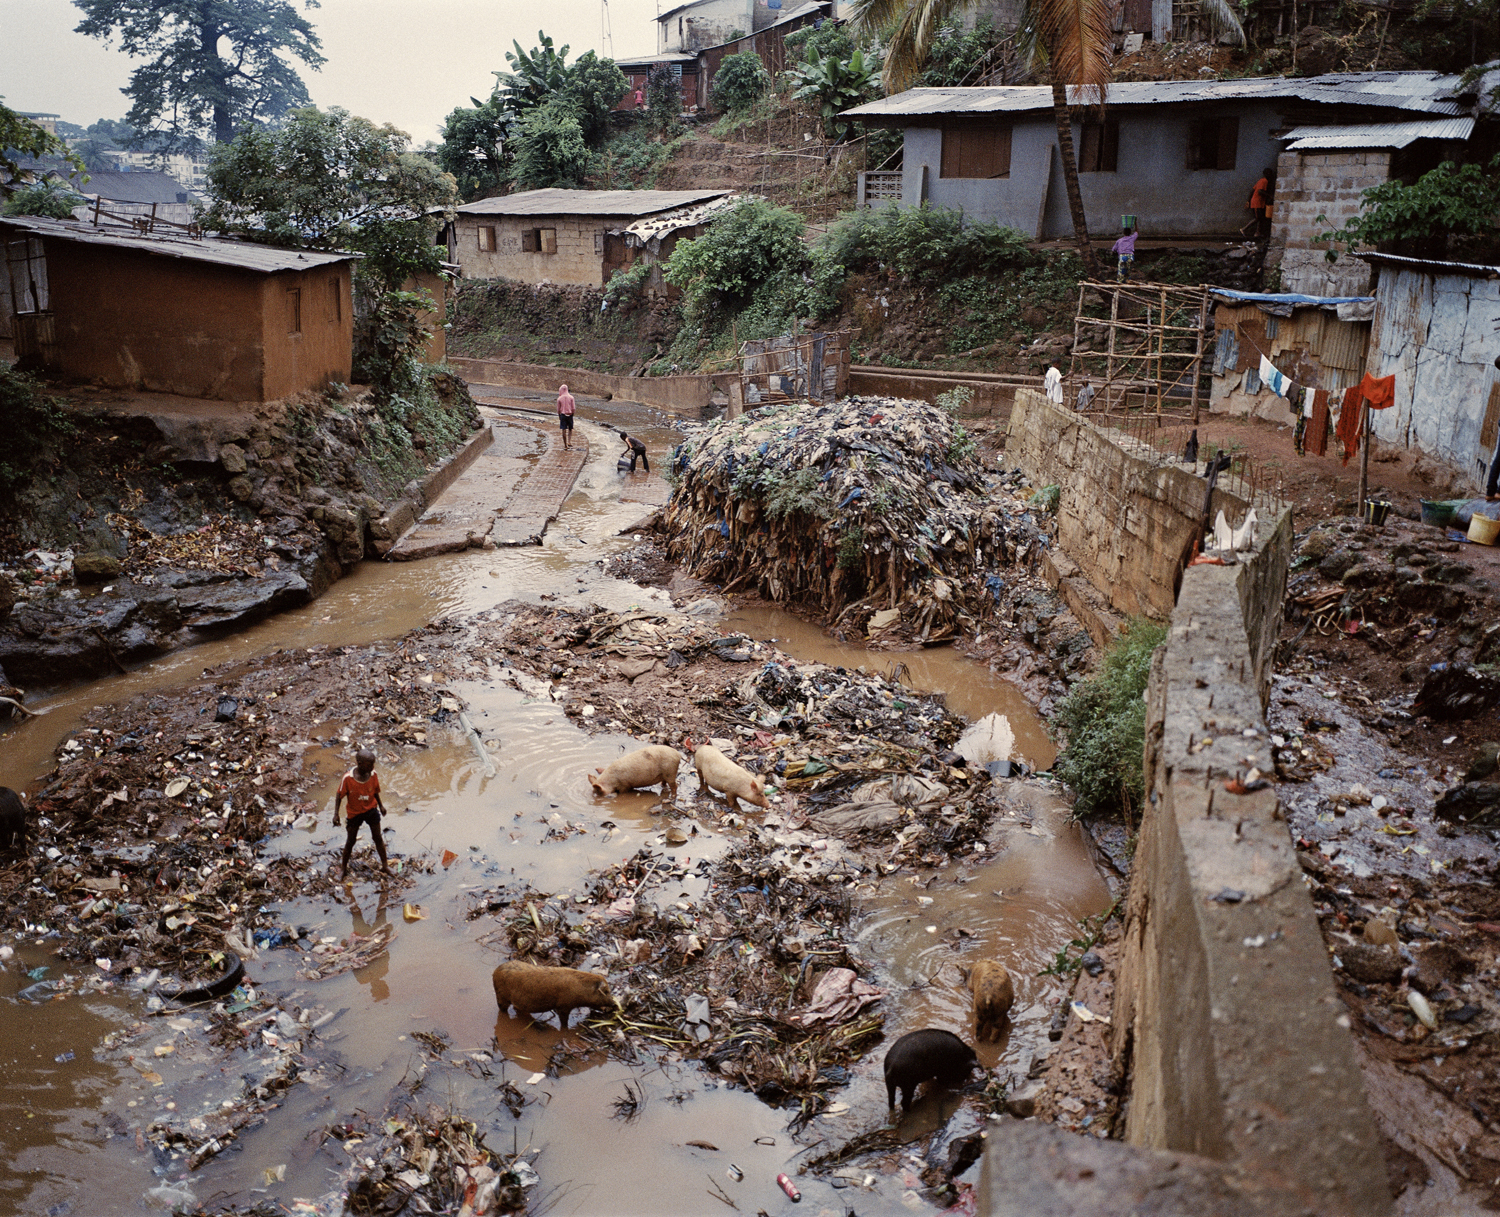 The Borborcombough Water Site in the Kroo Bay slum, one of two that service a population of 5,500 people. The Western Area -- where Freetown is located -- accounted for half of all cholera cases during the outbreak.